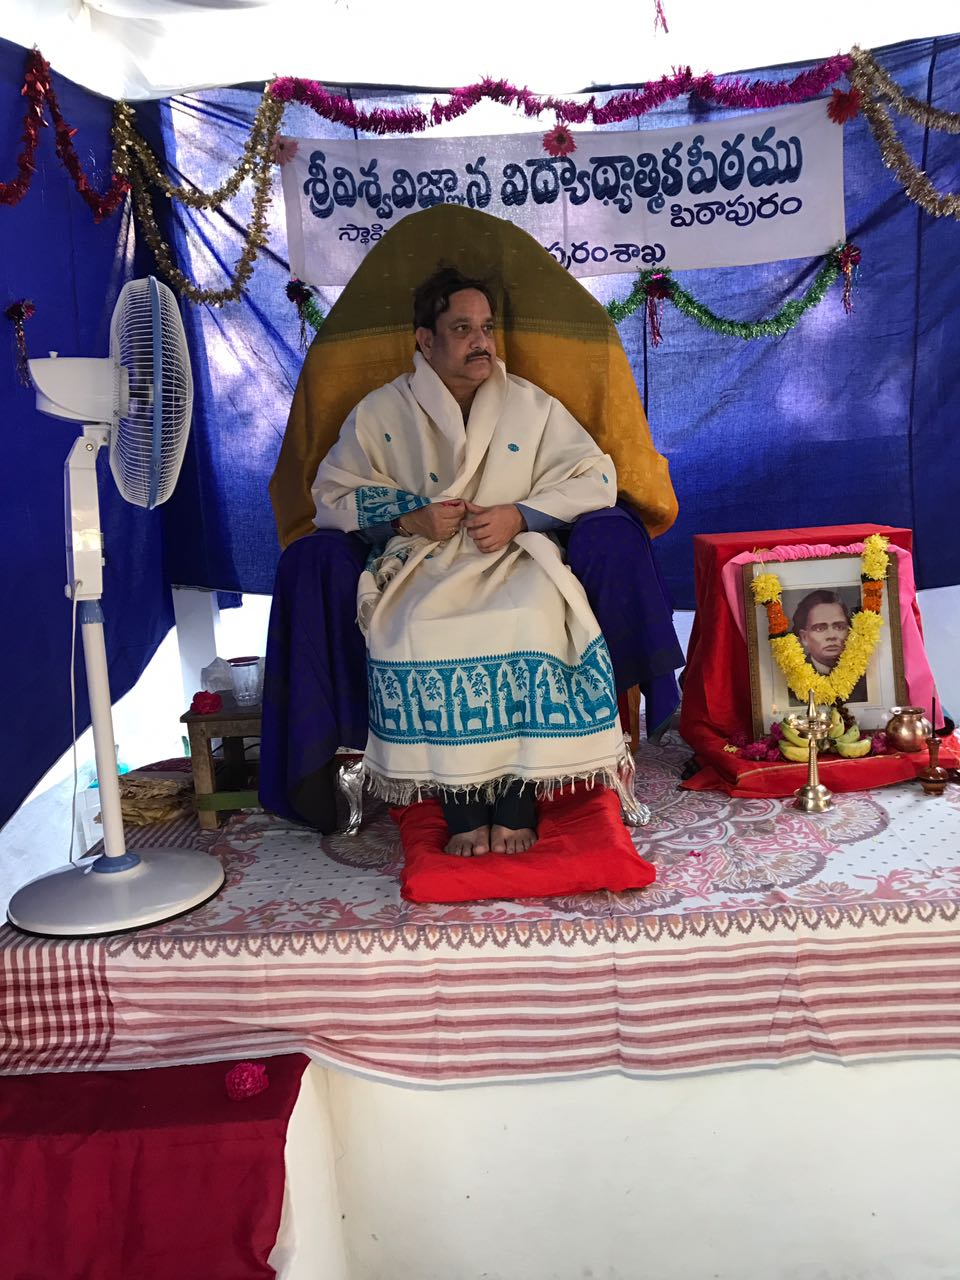 Sathguru Dr.Umar Alisha delivering his speec at Bheeshma Ekadasi Sabha in Narsapuram, West Godavari District.